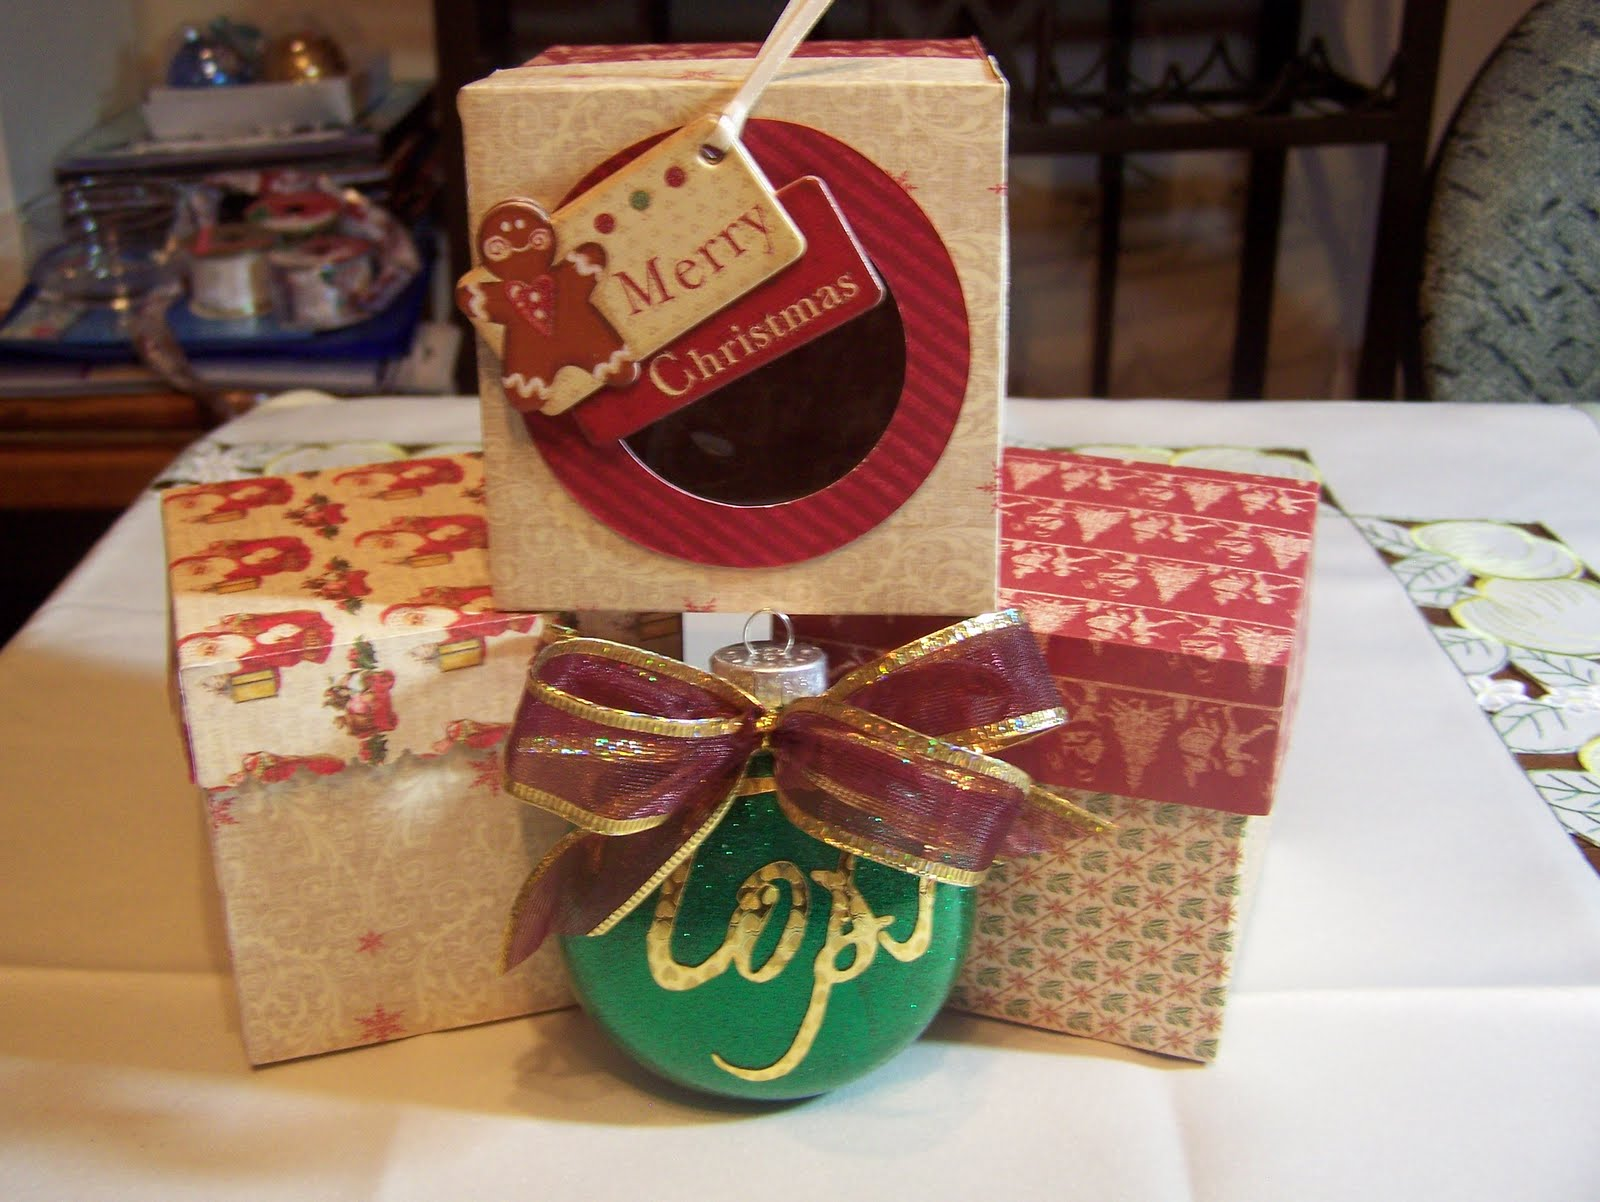 Jenny christmas ornaments and gift boxes